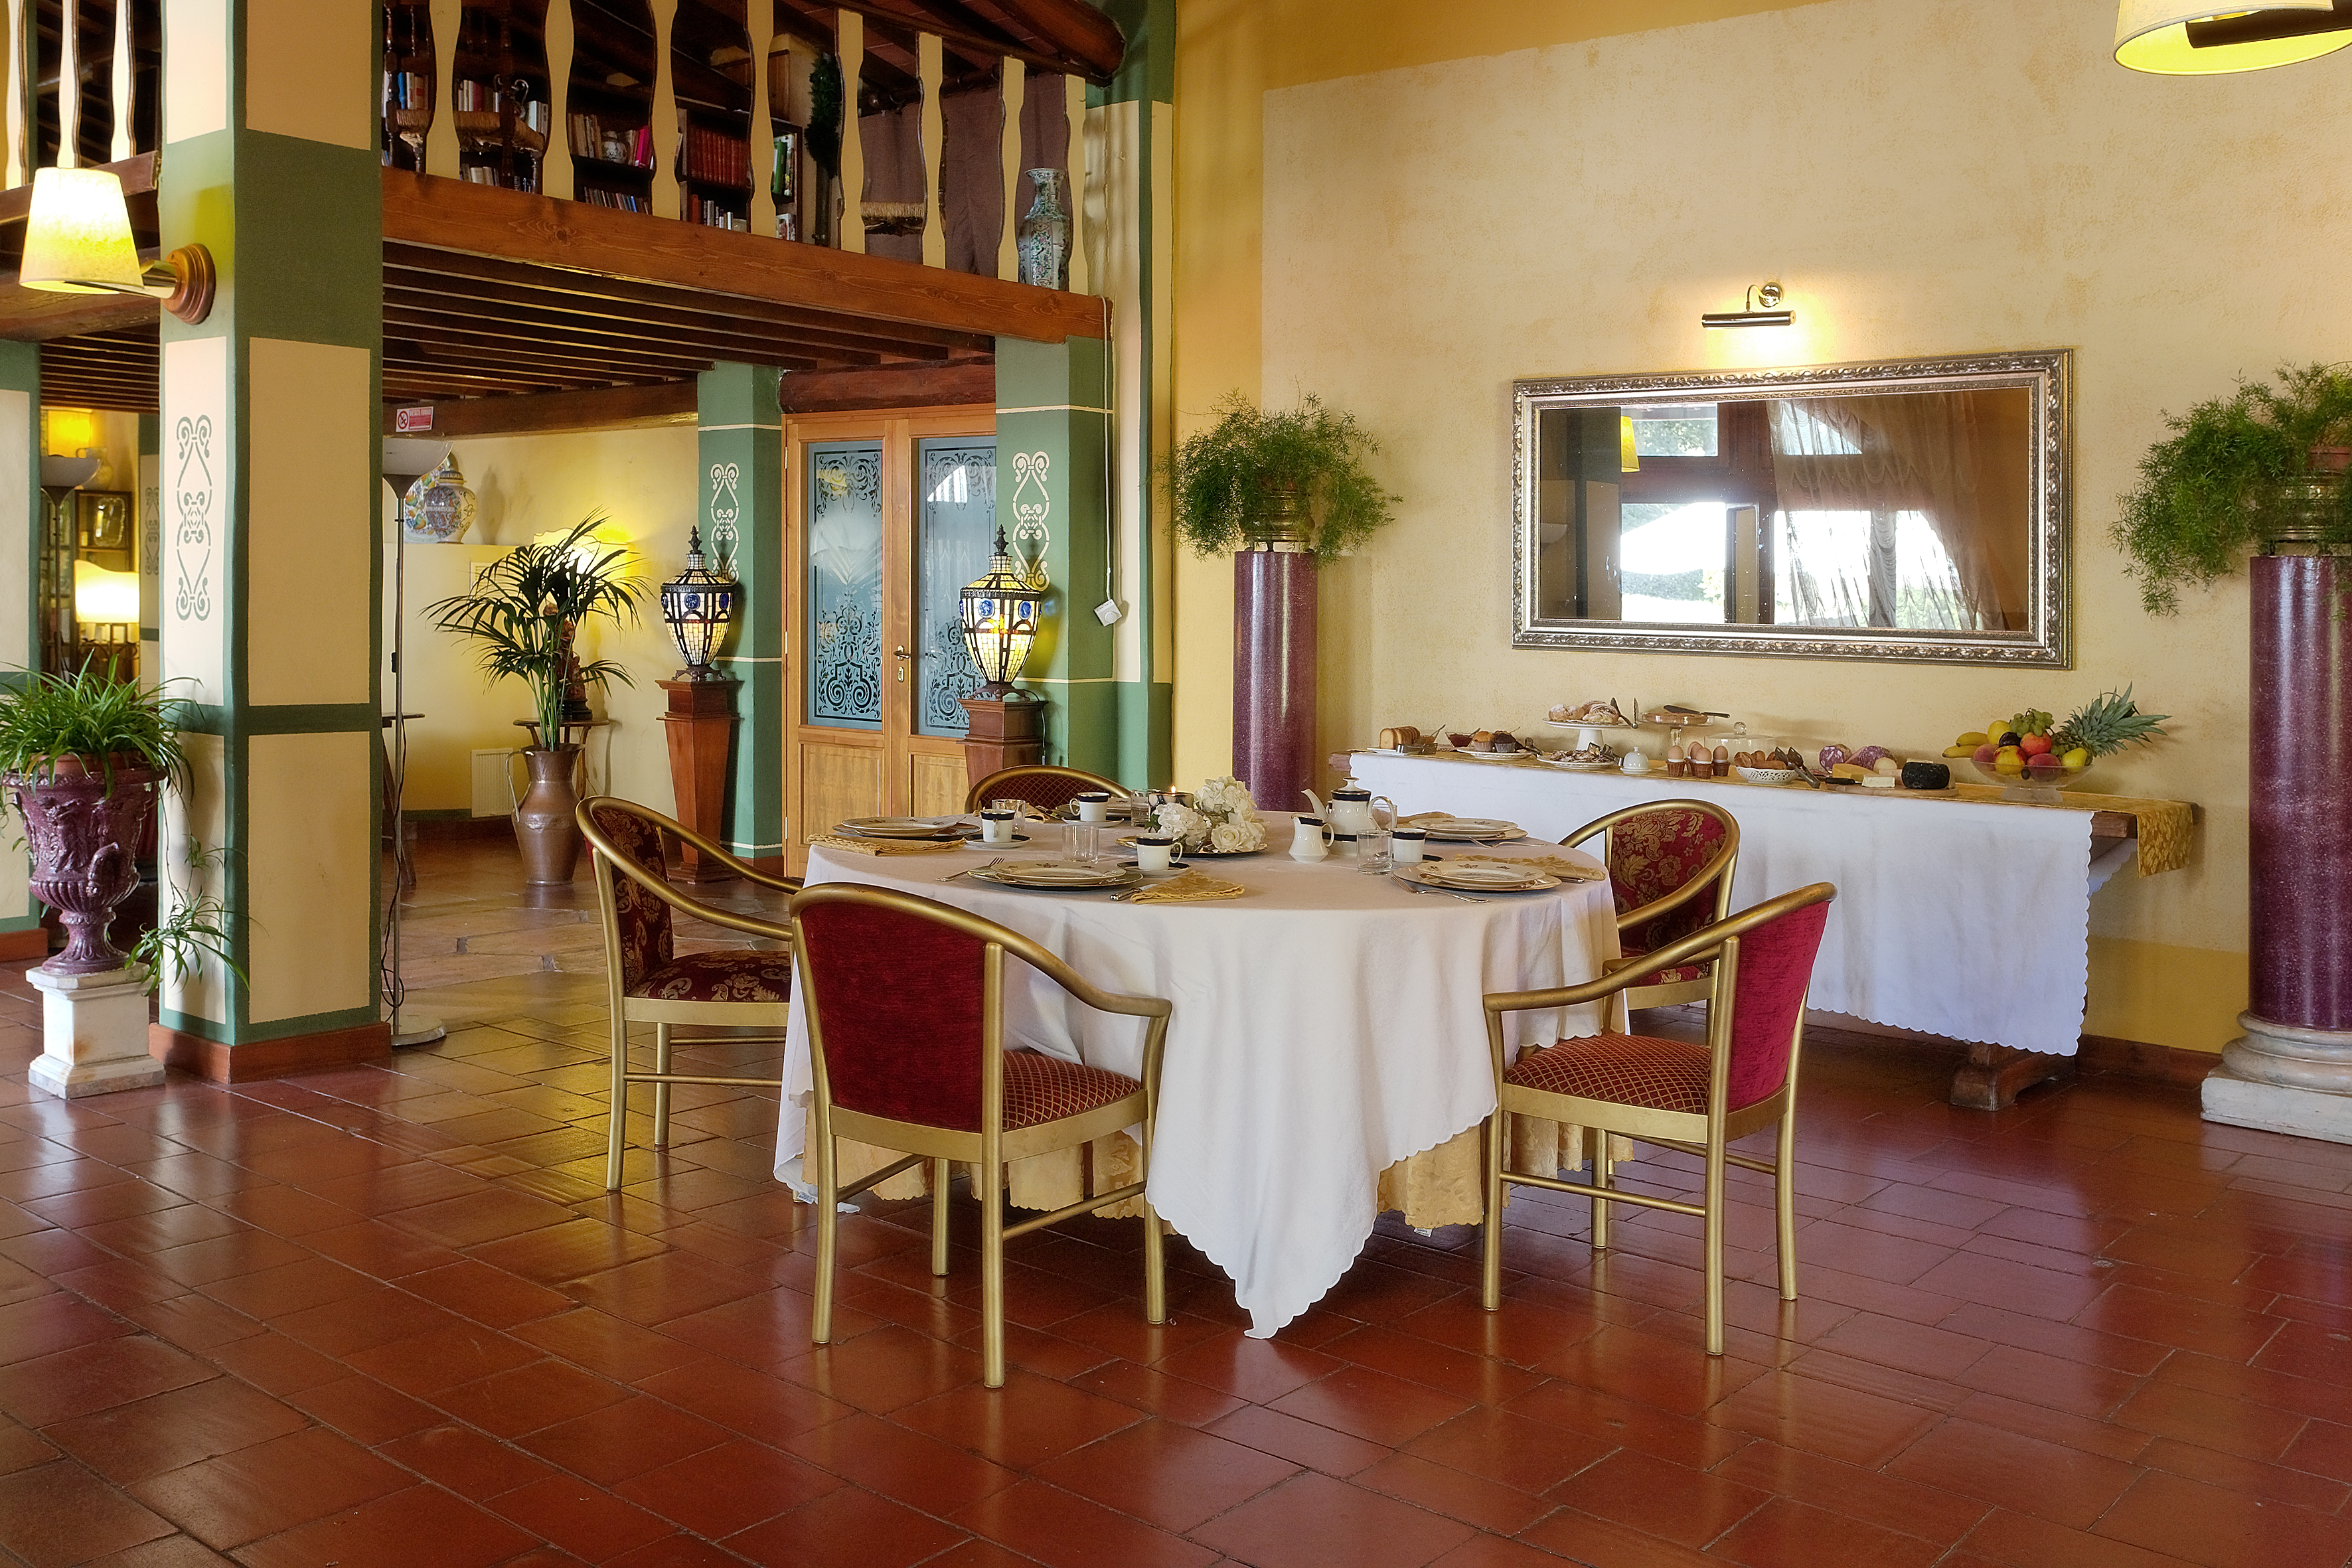 ... FLORENCE HOLIDAY RENTALS - ITALY TUSCANY FLORENCE - Luxury Villa  Vacation Rentals With Private Pool In